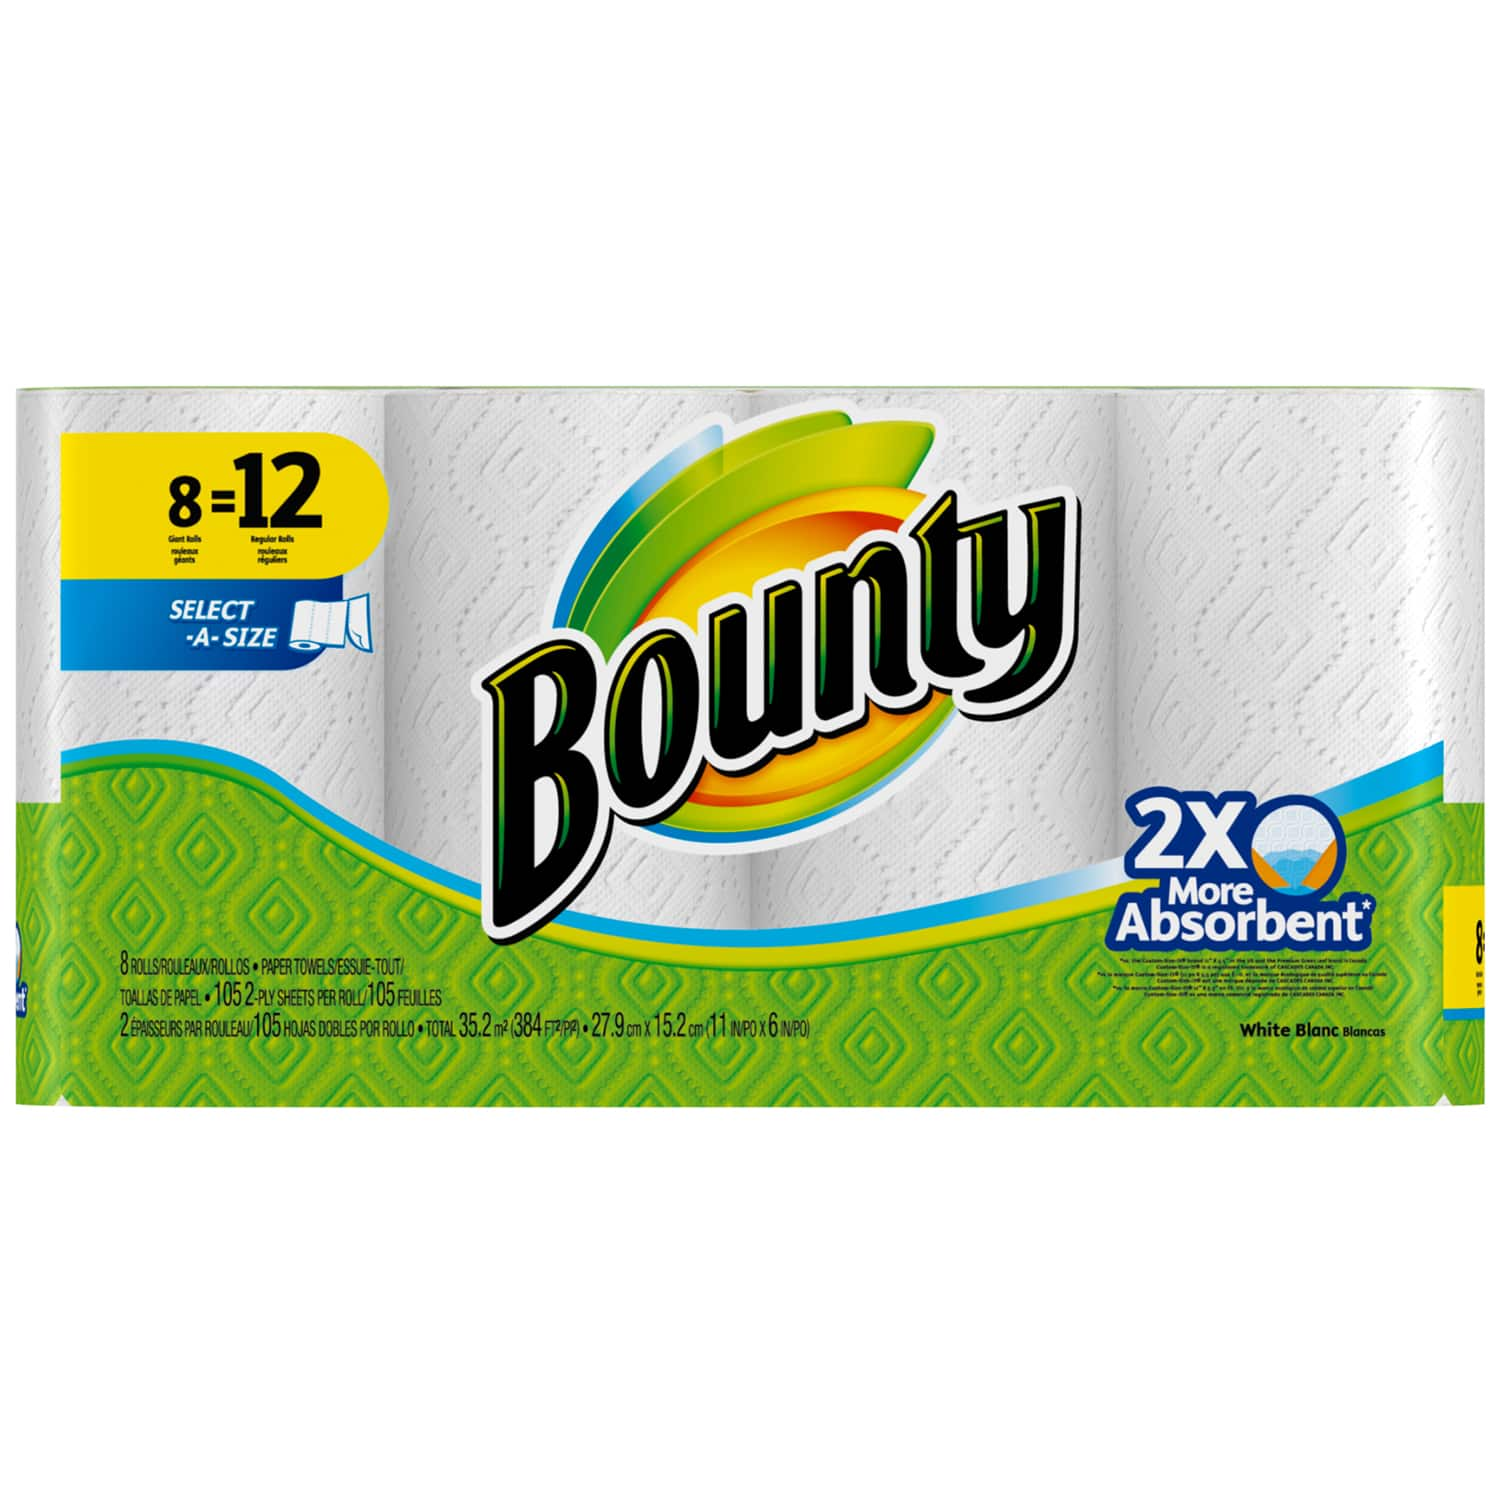 2-Pack 8-Ct Bounty Select-A-Size Giant Roll Paper Towels + $5 Target Gift Card  $16 & More + Free S&H